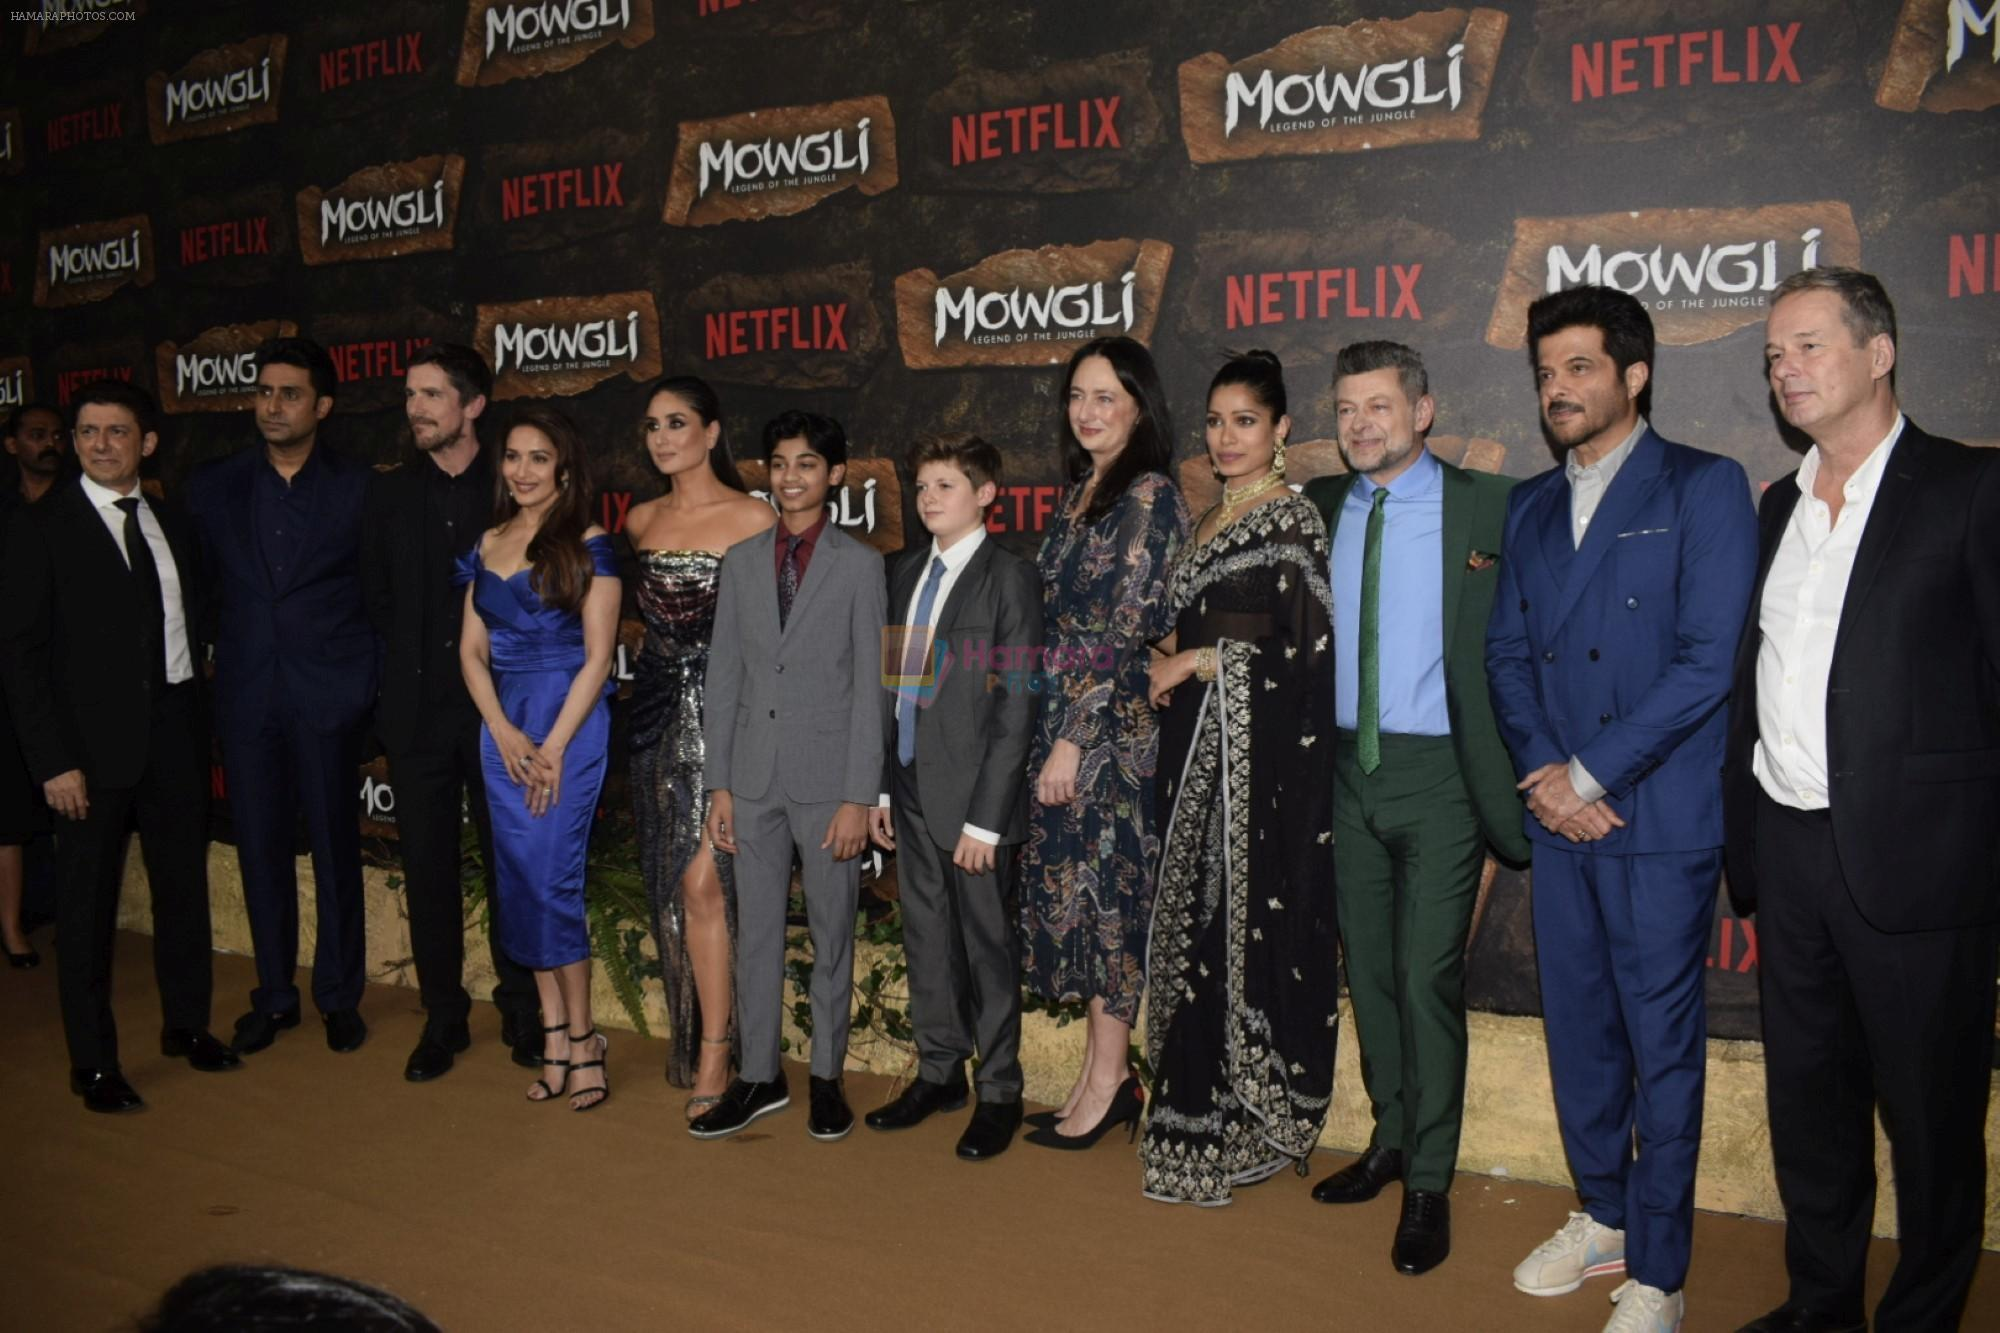 Kareena Kapoor Khan, Anil Kapoor, Abhishek Bachchan and Madhuri Dixit, Christian Bale,_Andy Serkis, Freida Pinto, Rohan Chand at Mowgli world premiere in Yashraj studios, Andheri on 26th Nov 2018